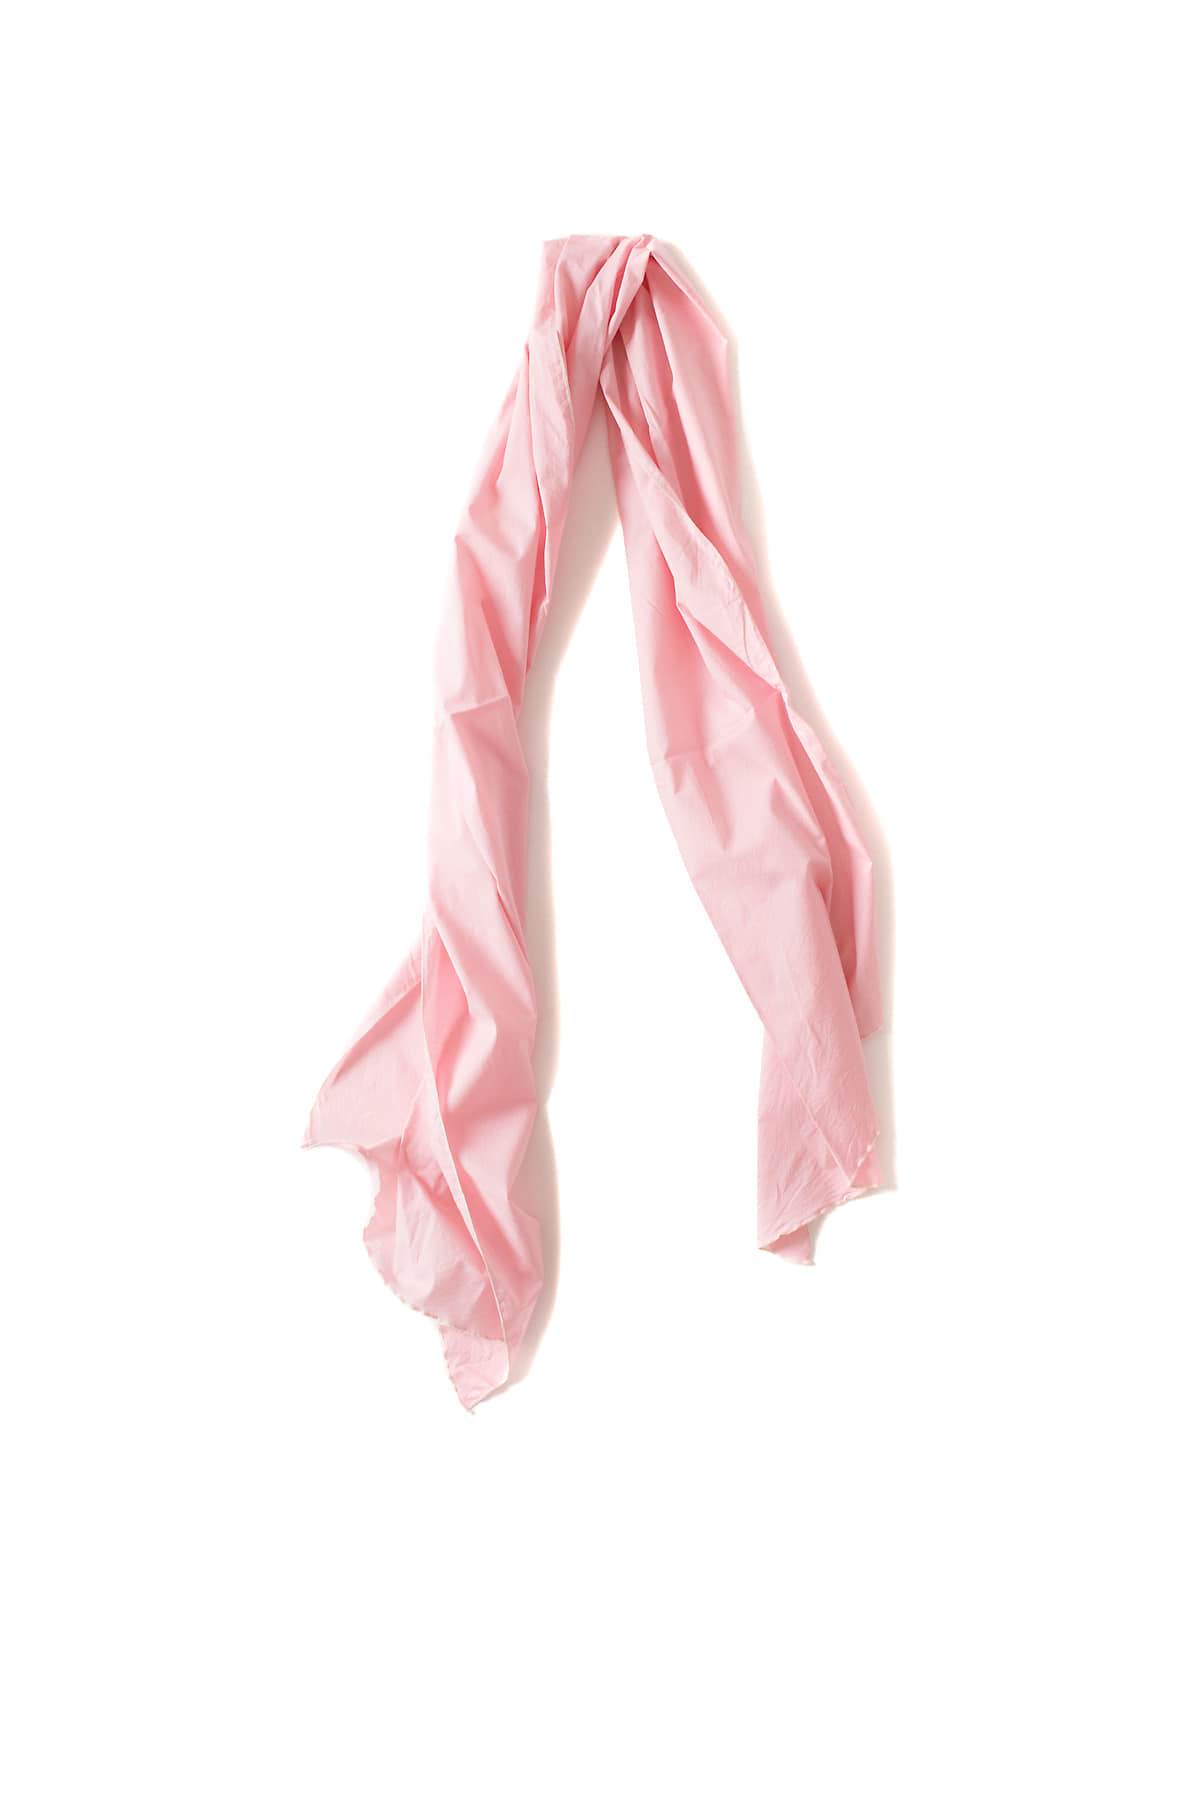 Engineered Garments : Long Scarf (Pink High Count Cotton Lawn)